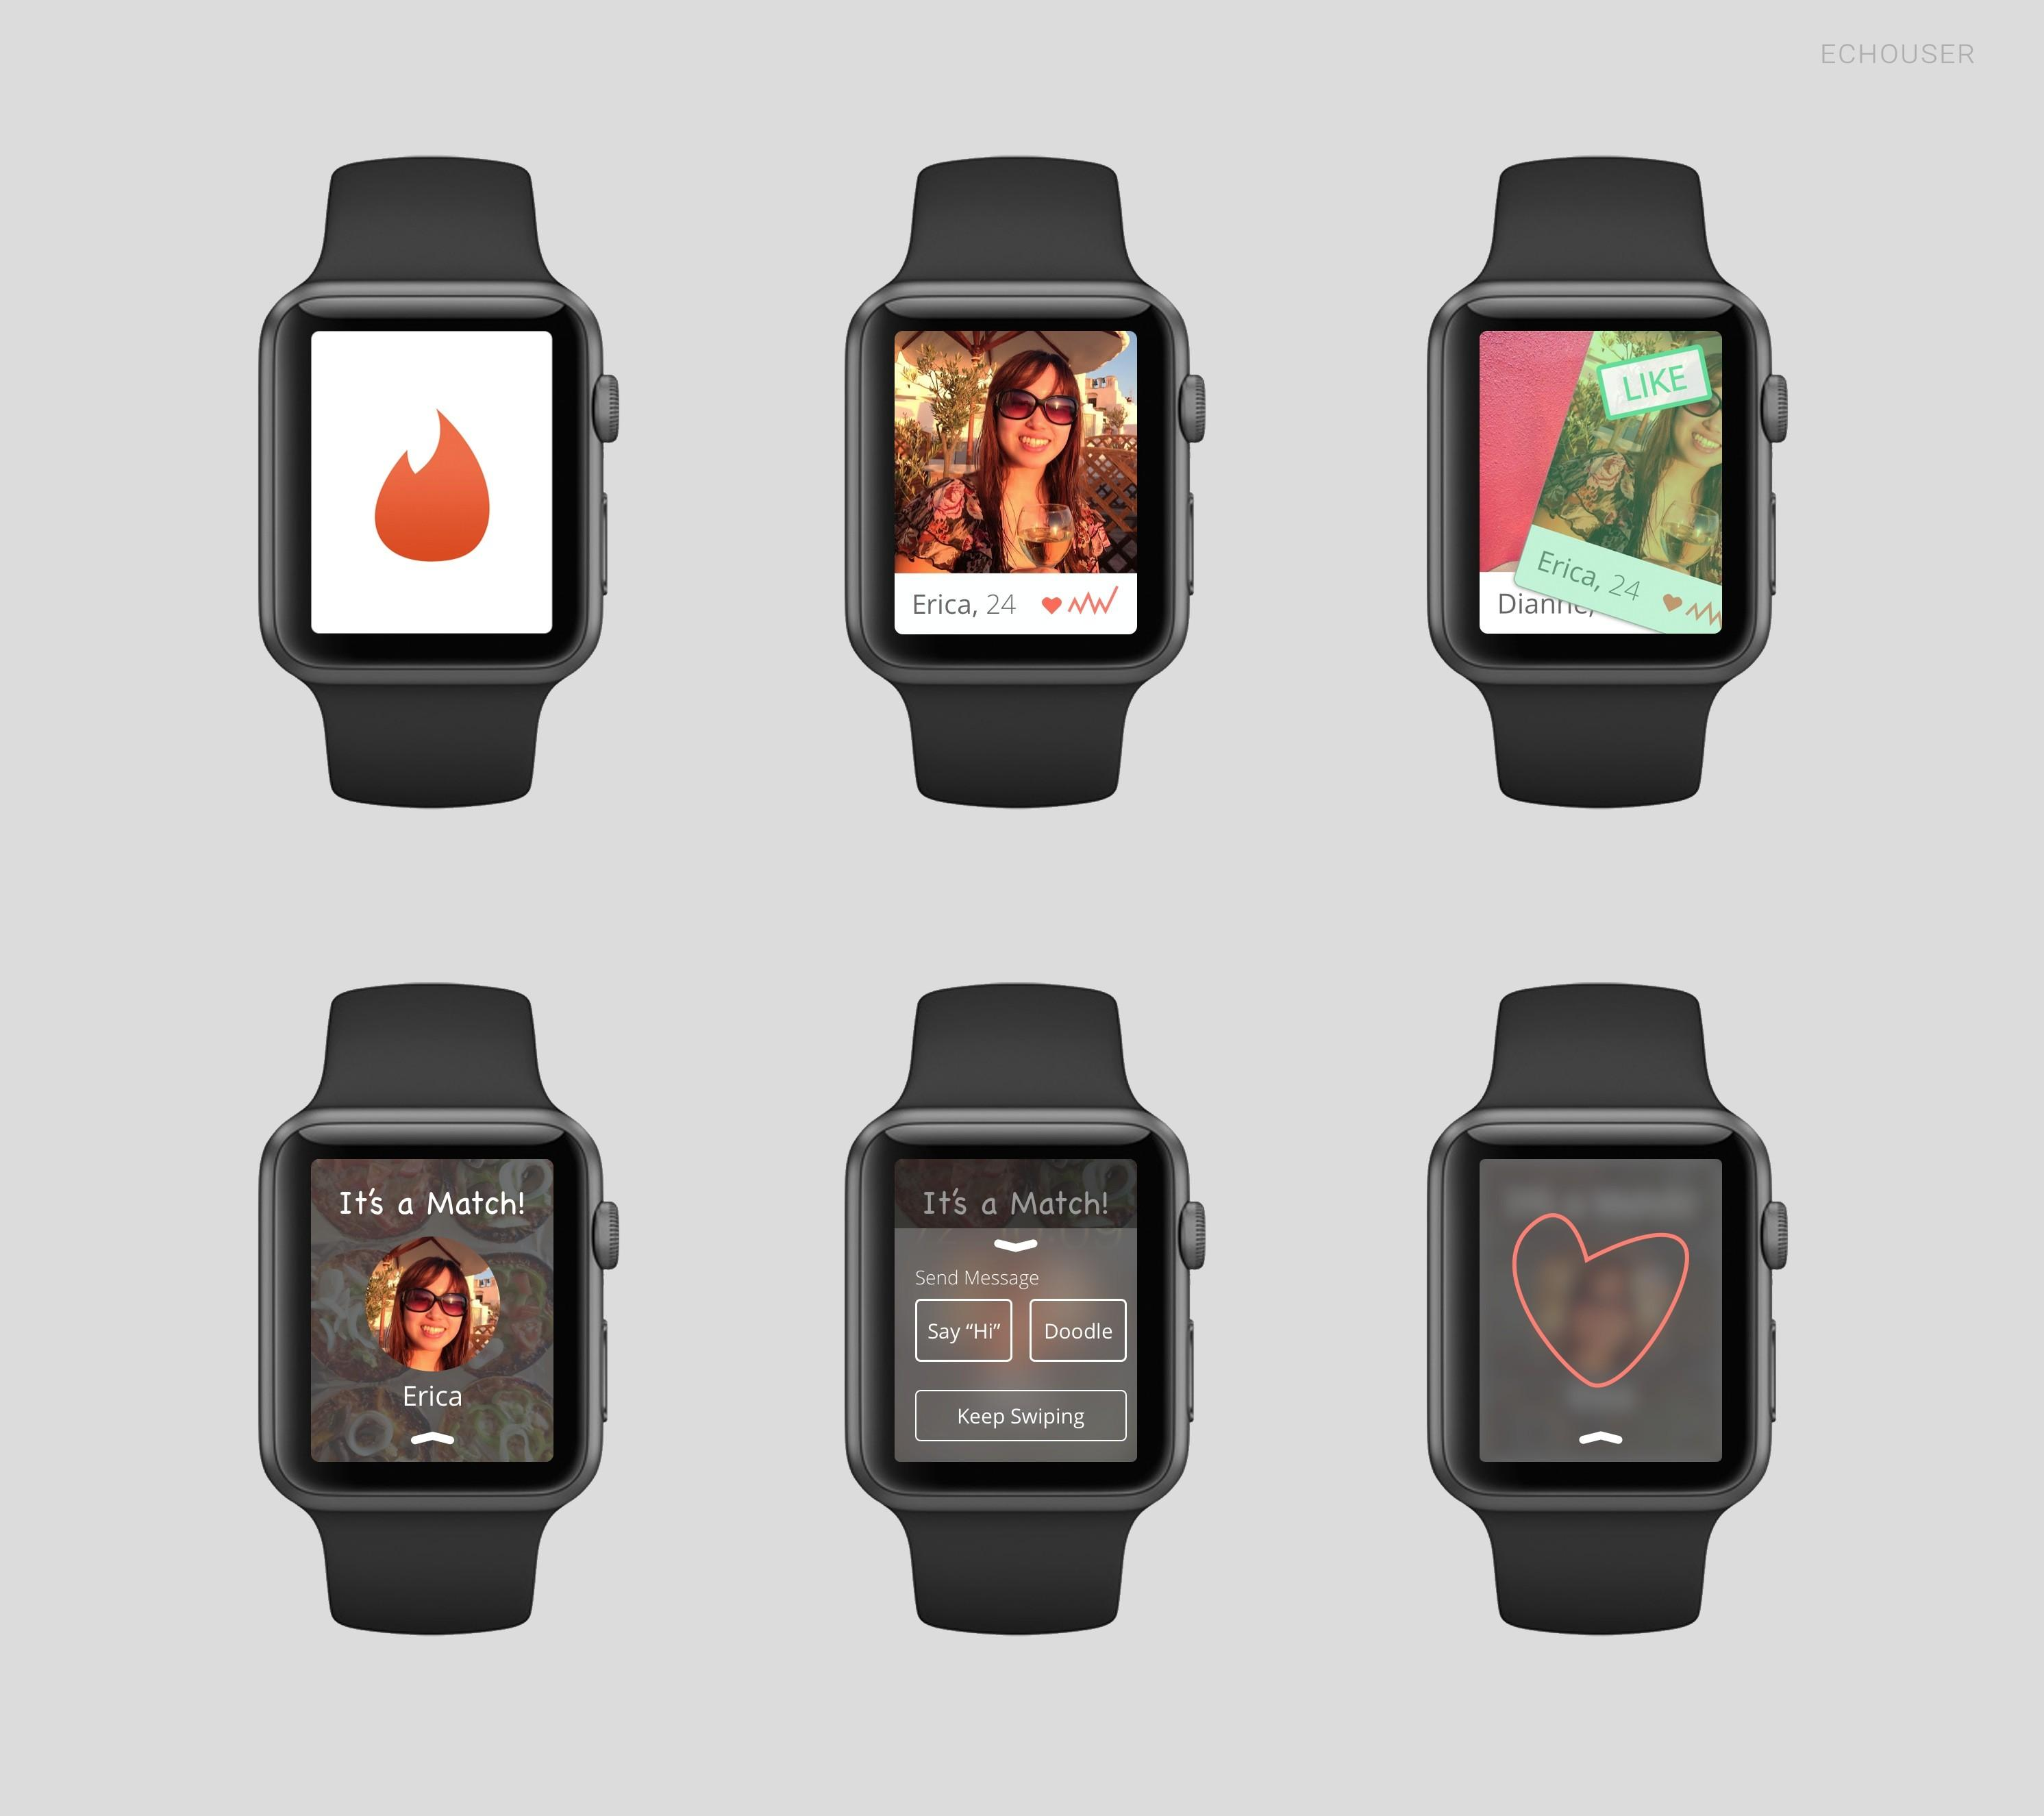 Apple_Watch_Tinder